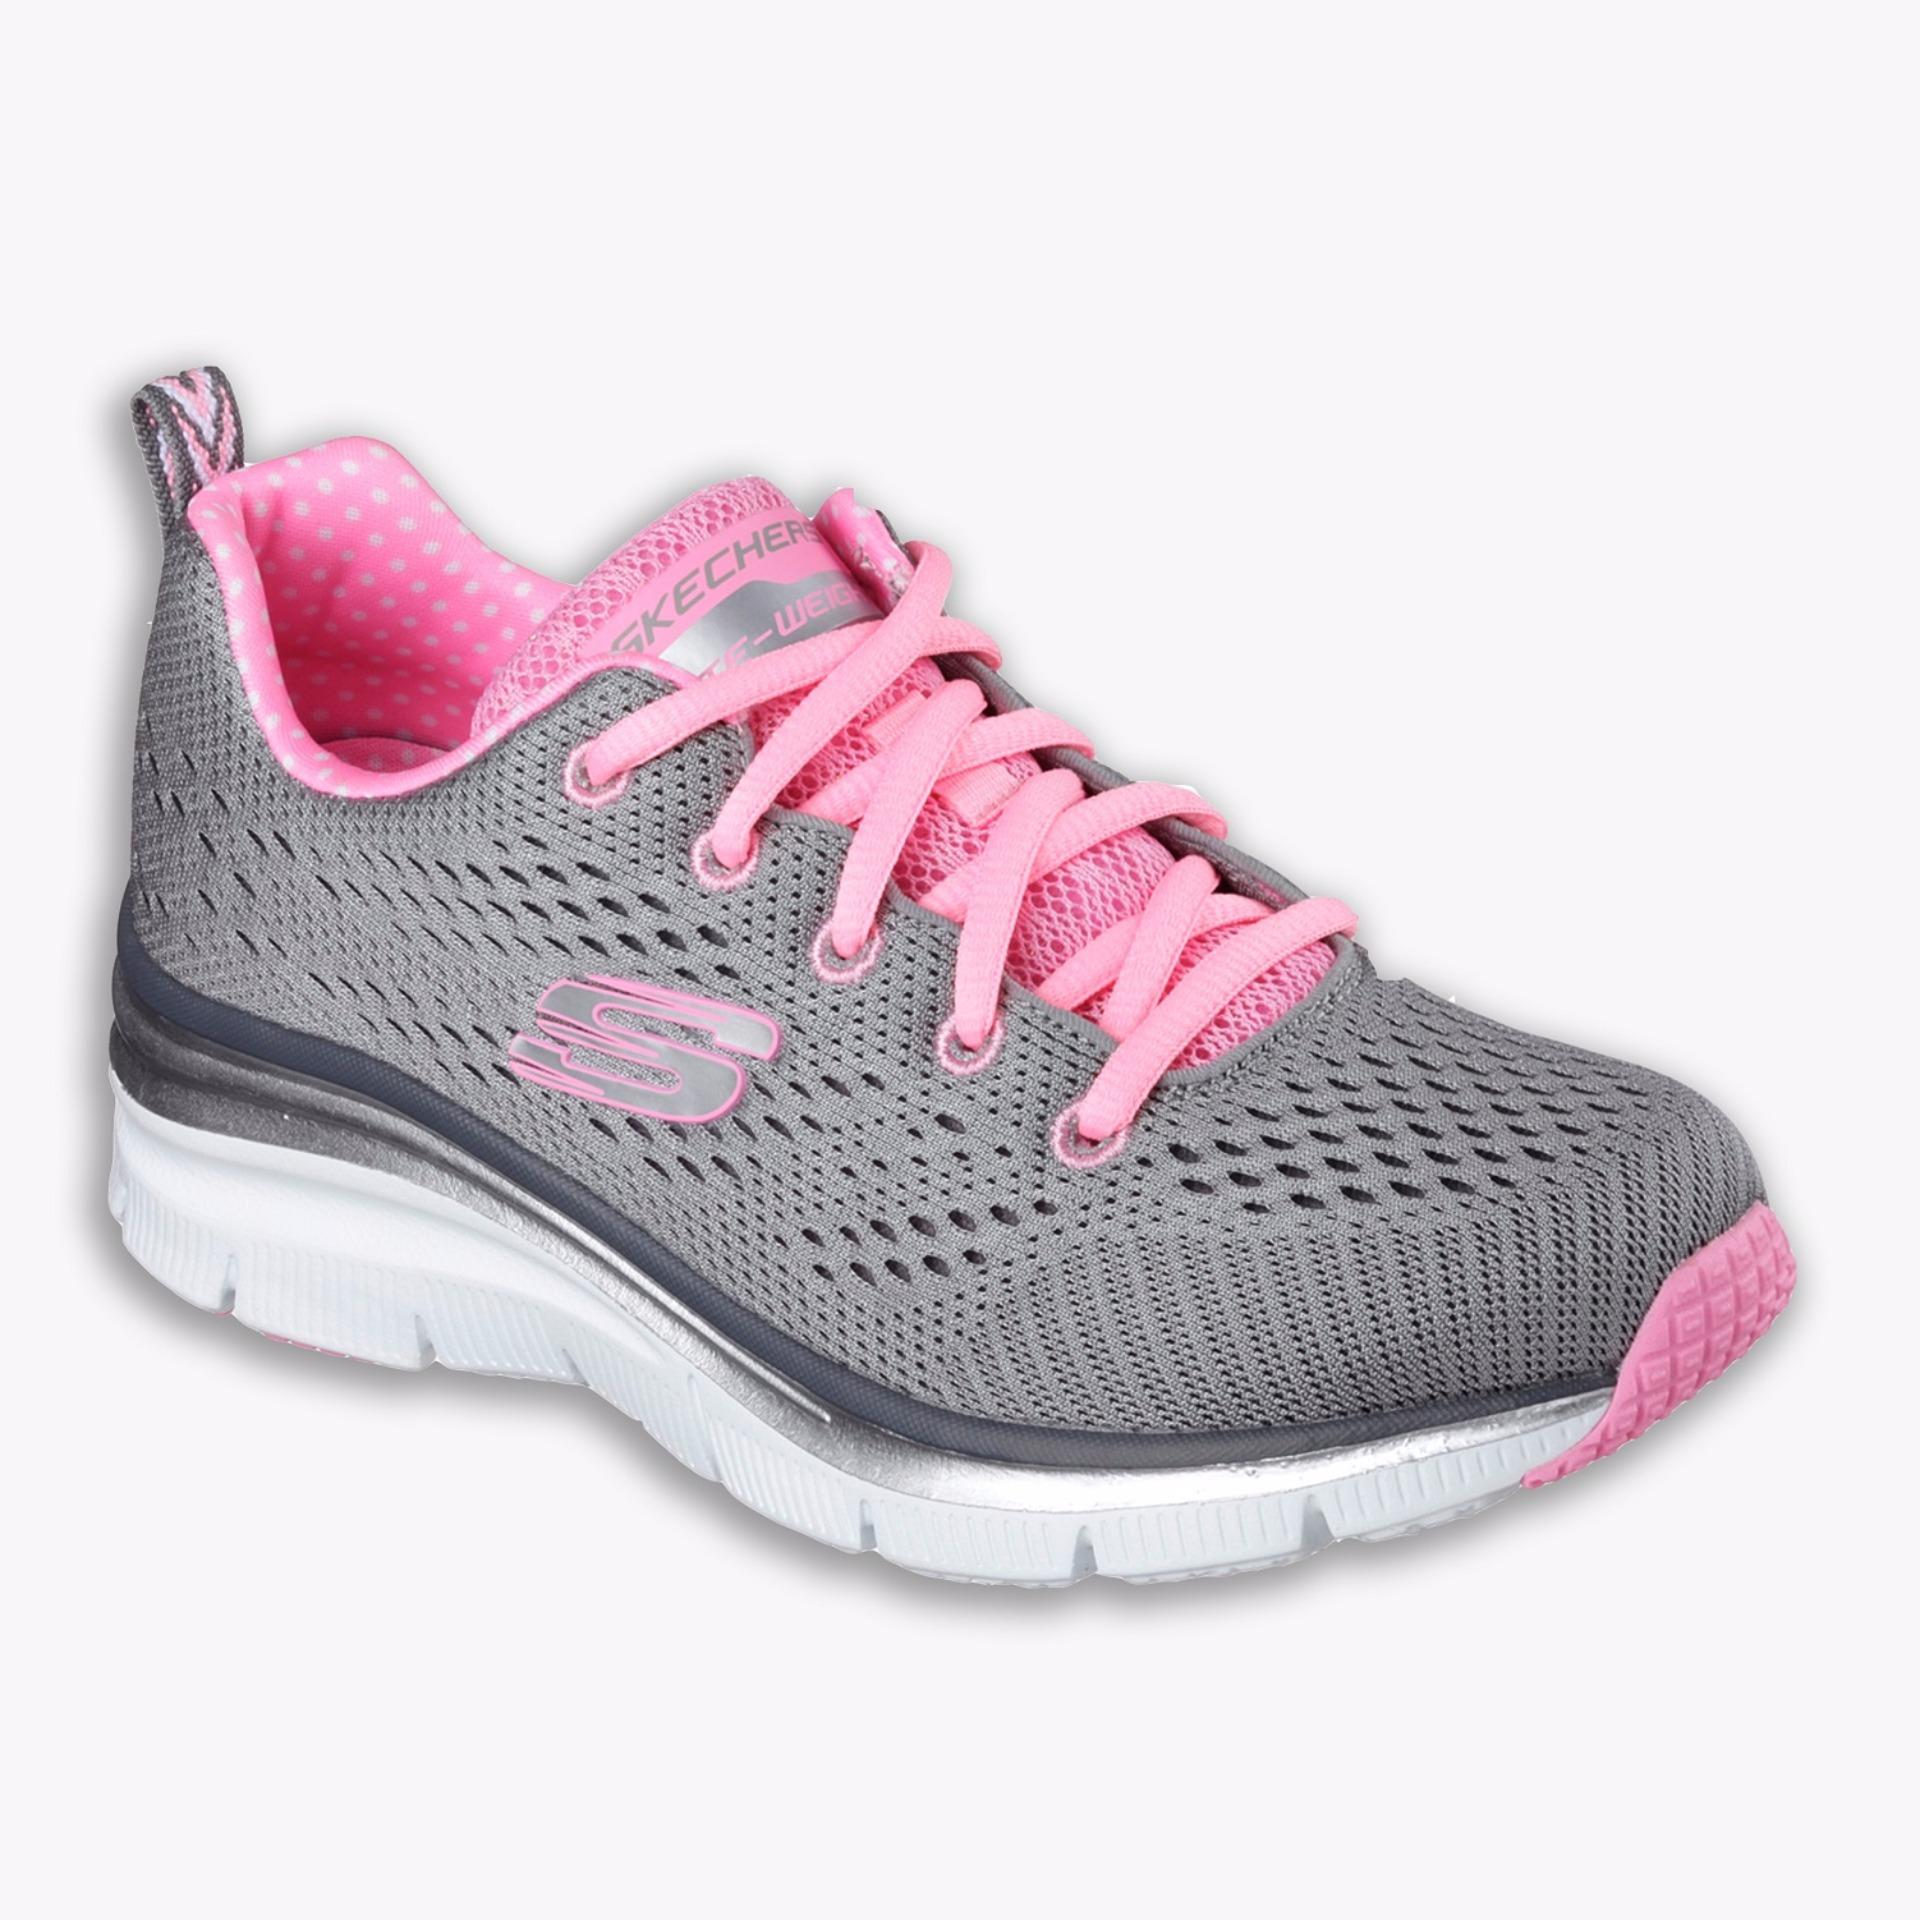 Beli Skechers Fashion Fit Statement Piece Women S Running Shoes Abu Abu Cicil